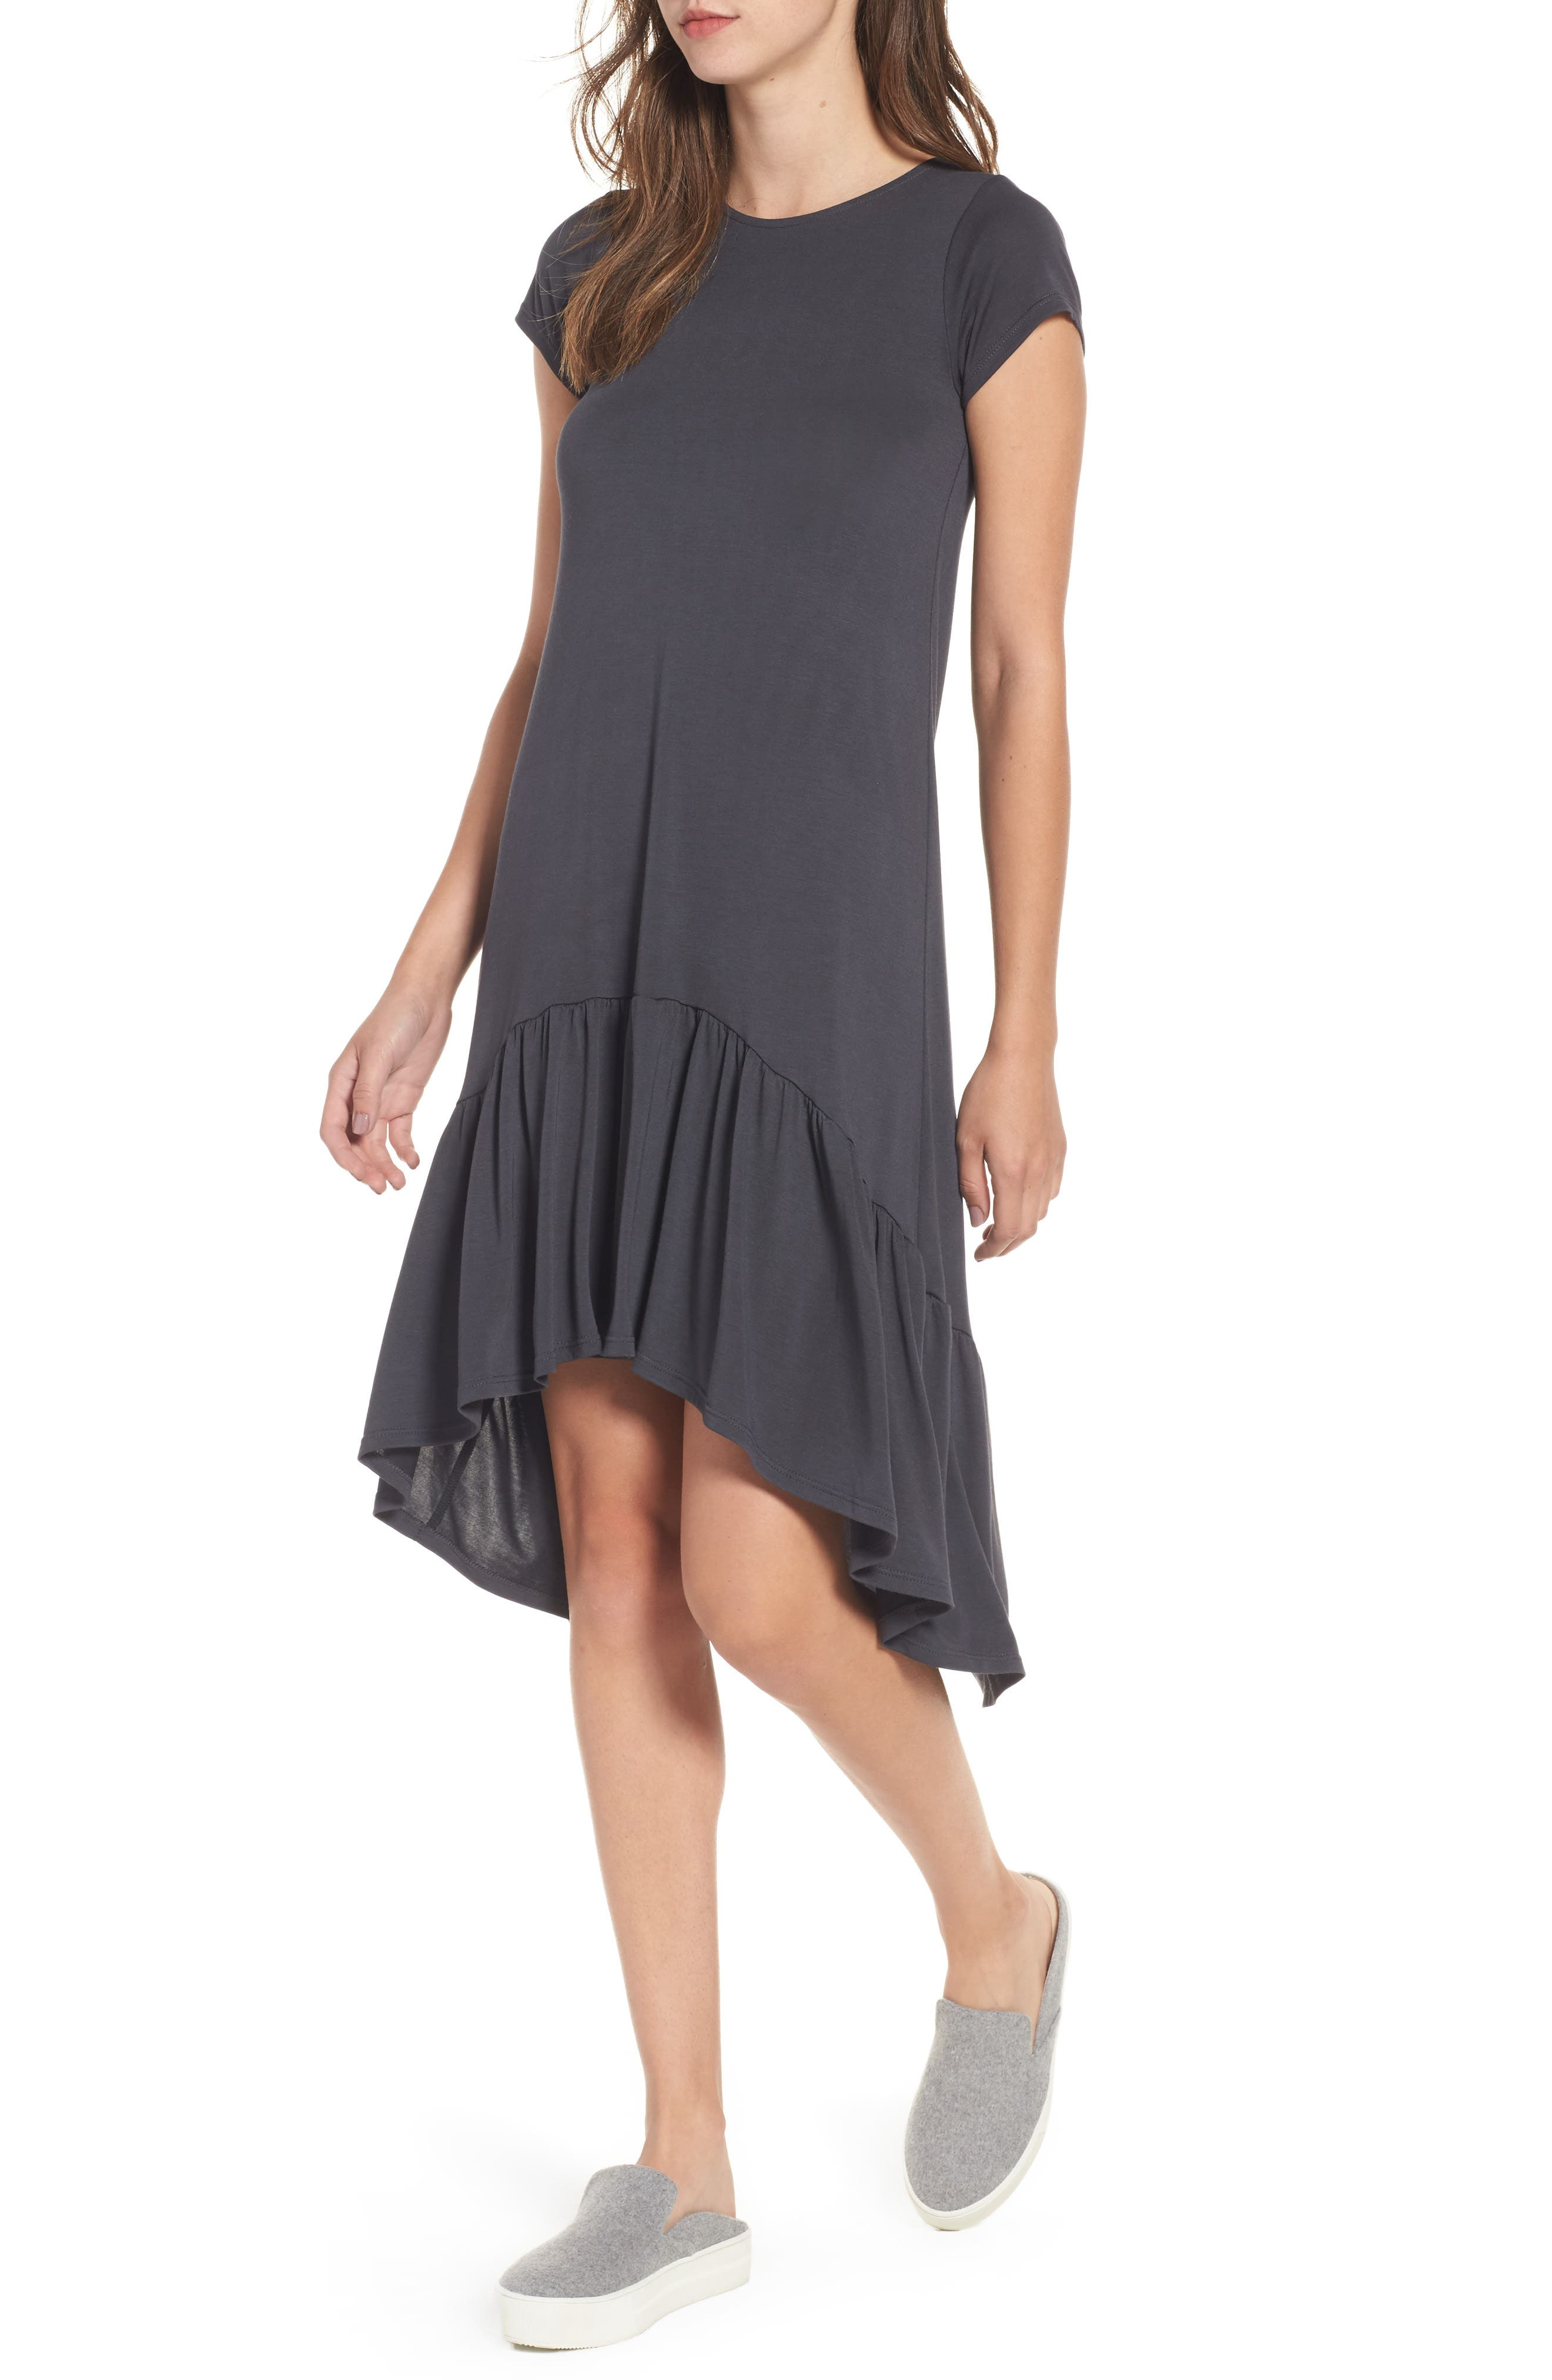 Cotton Emporium Ruffle Hem Knit T-Shirt Dress